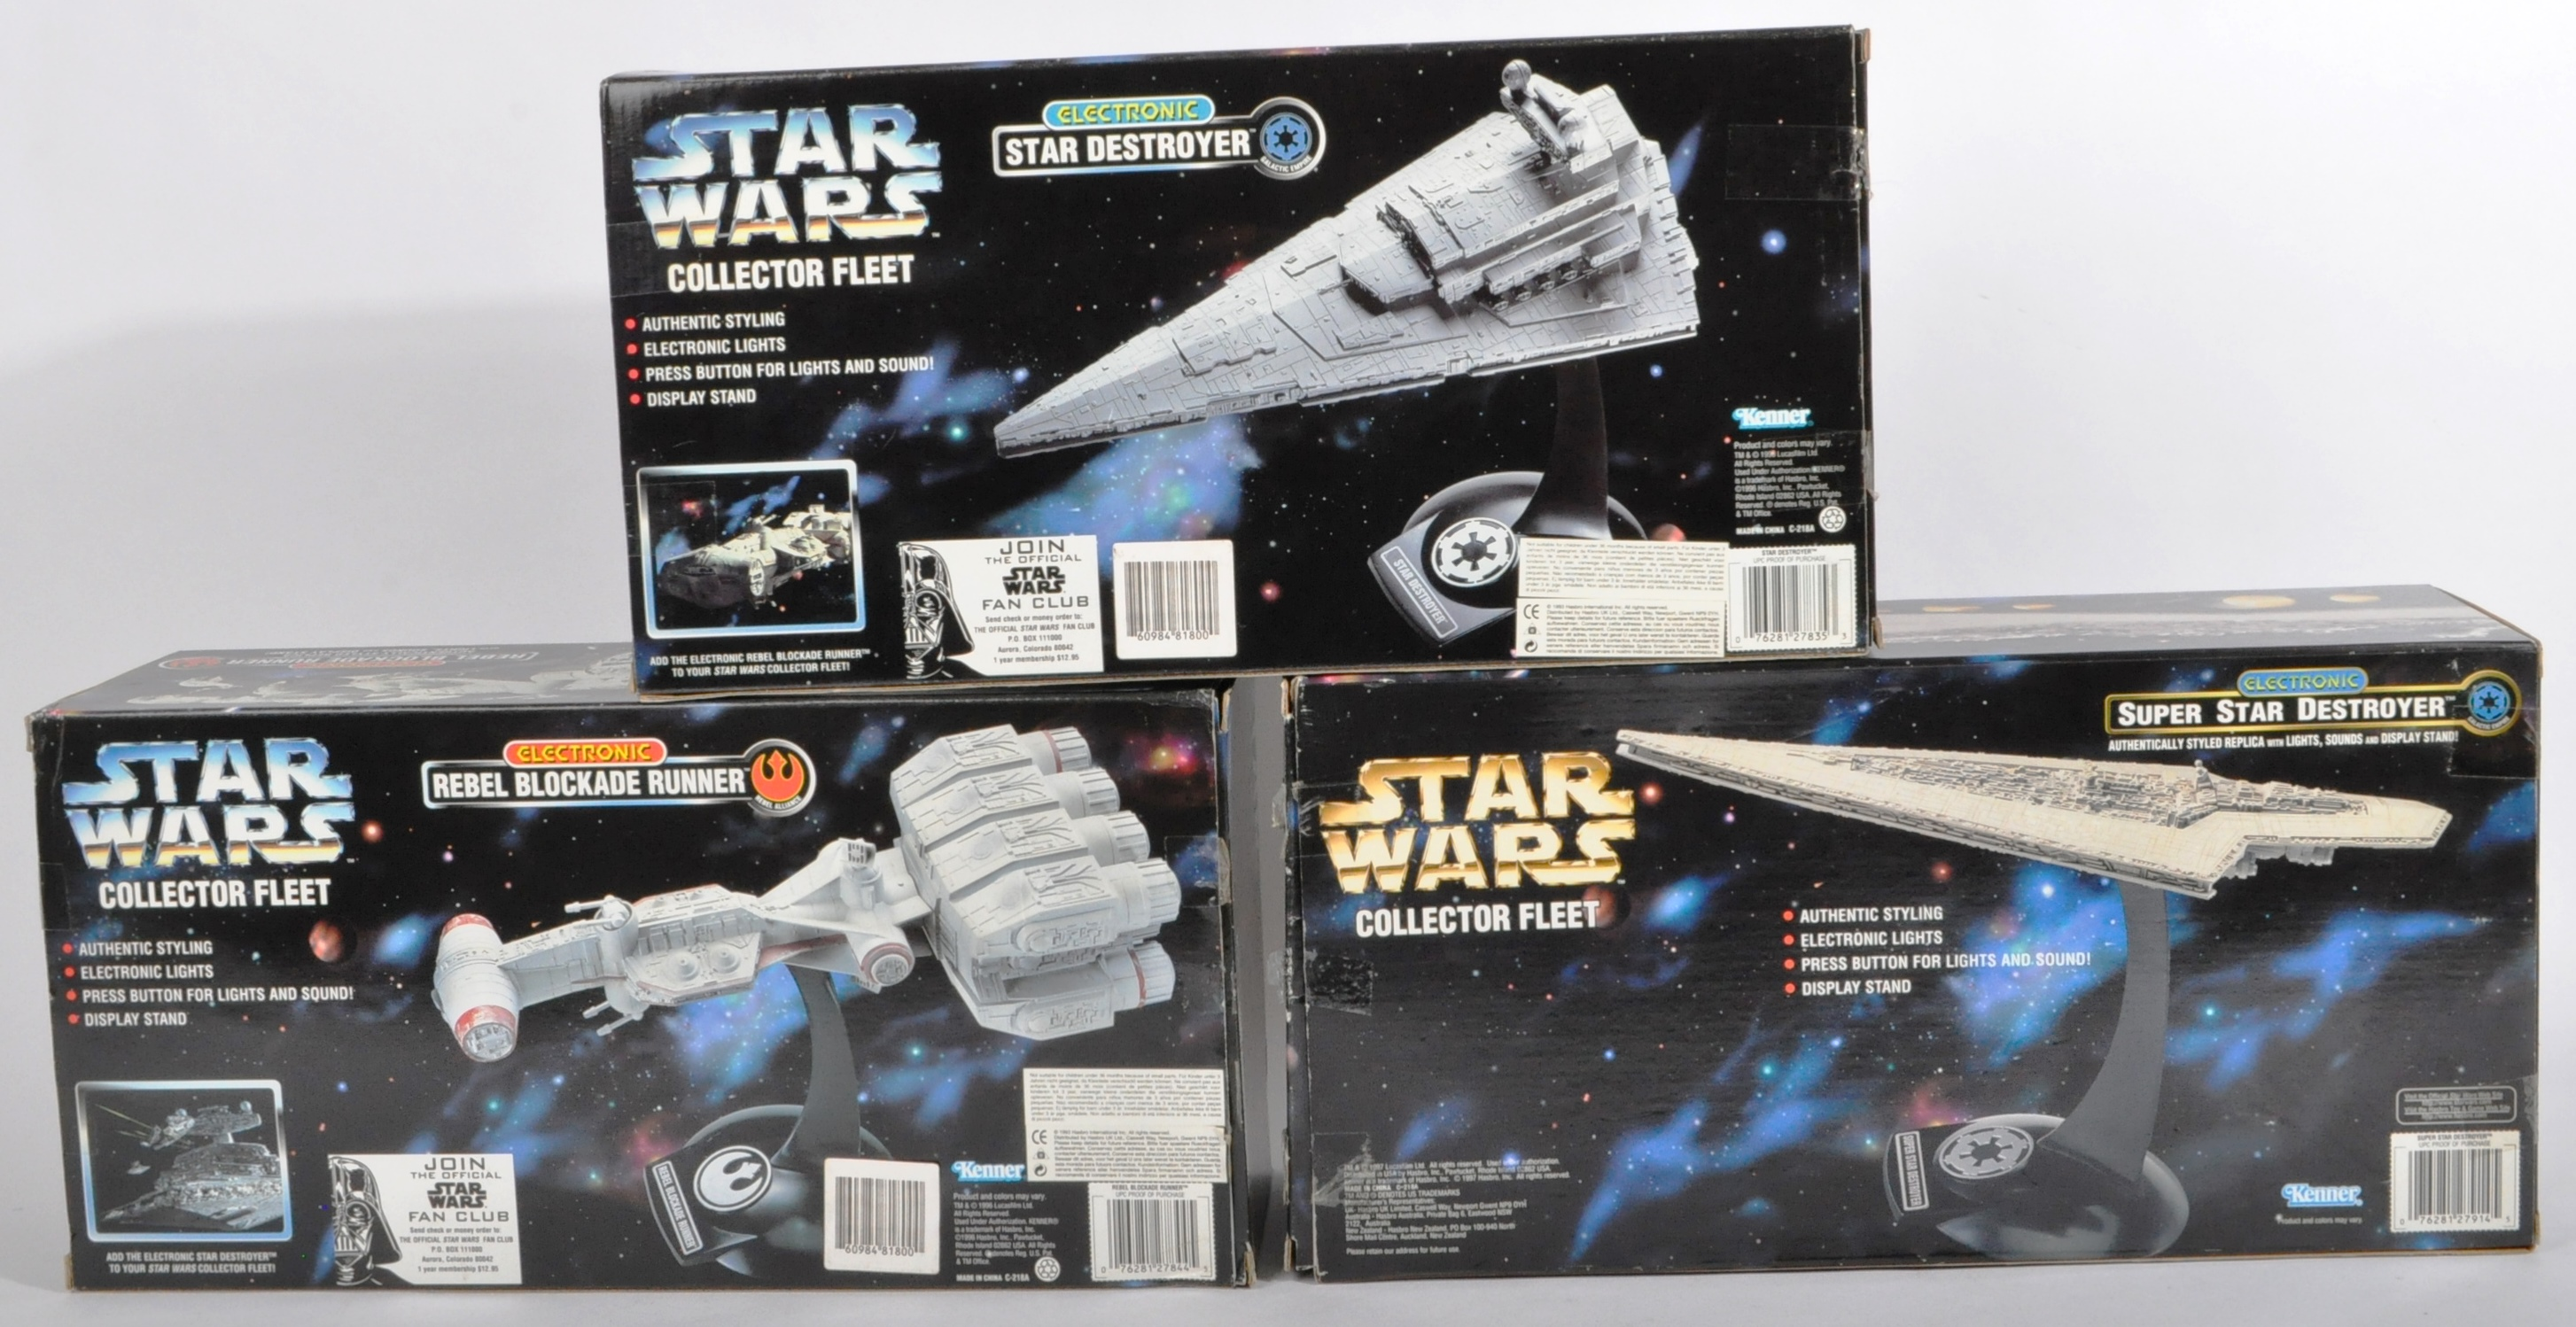 STAR WARS - COLLECTION OF KENNER ' COLLECTOR FLEET ' PLAYSETS - Image 3 of 5